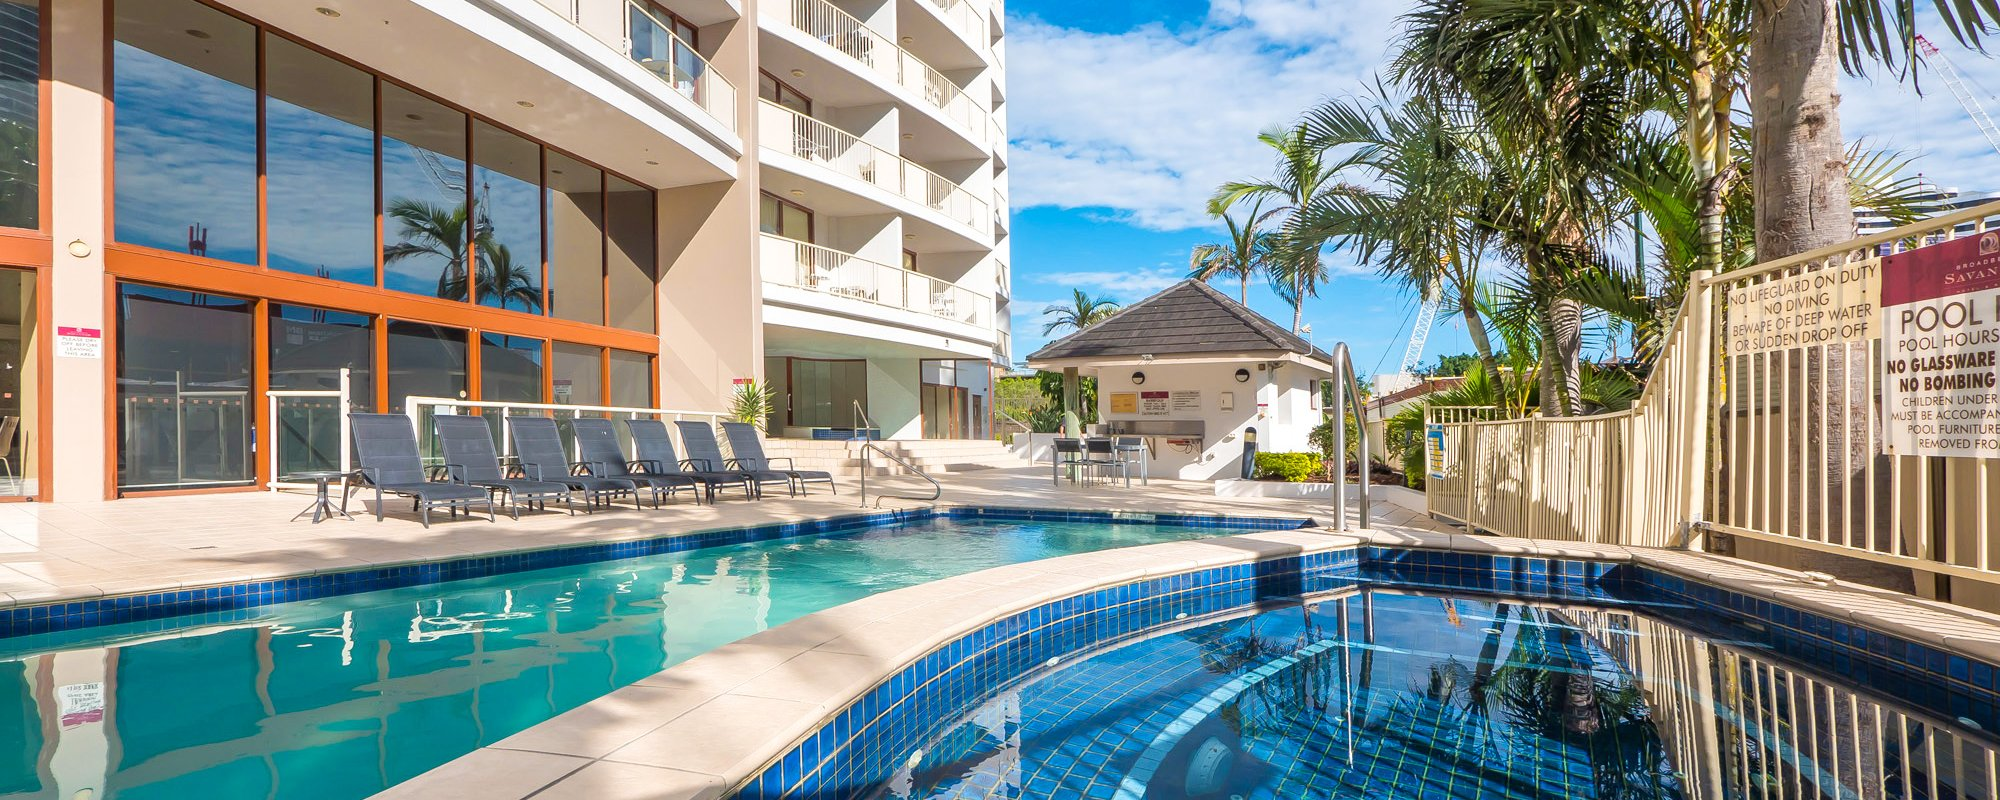 Broadbeach Savannah 7 1